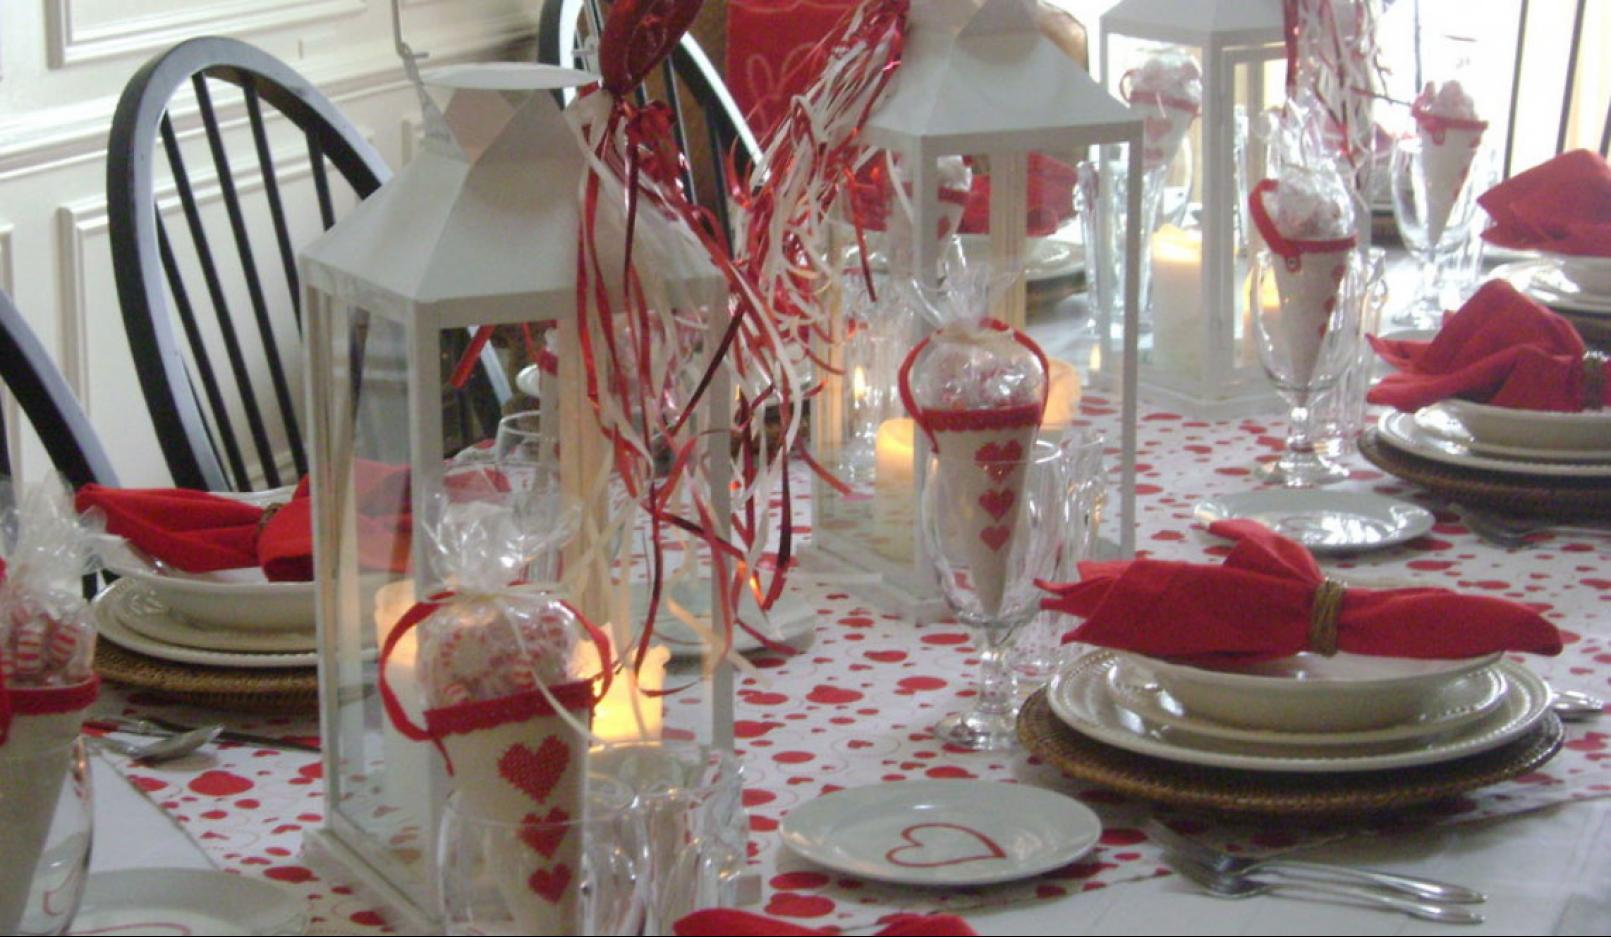 Source Homemydesign. The Romantic Red Valentineu0027s Day Table Setting & Table Setting Ideas for a Romantic Valentineu0027s Day Dinner | Cursor